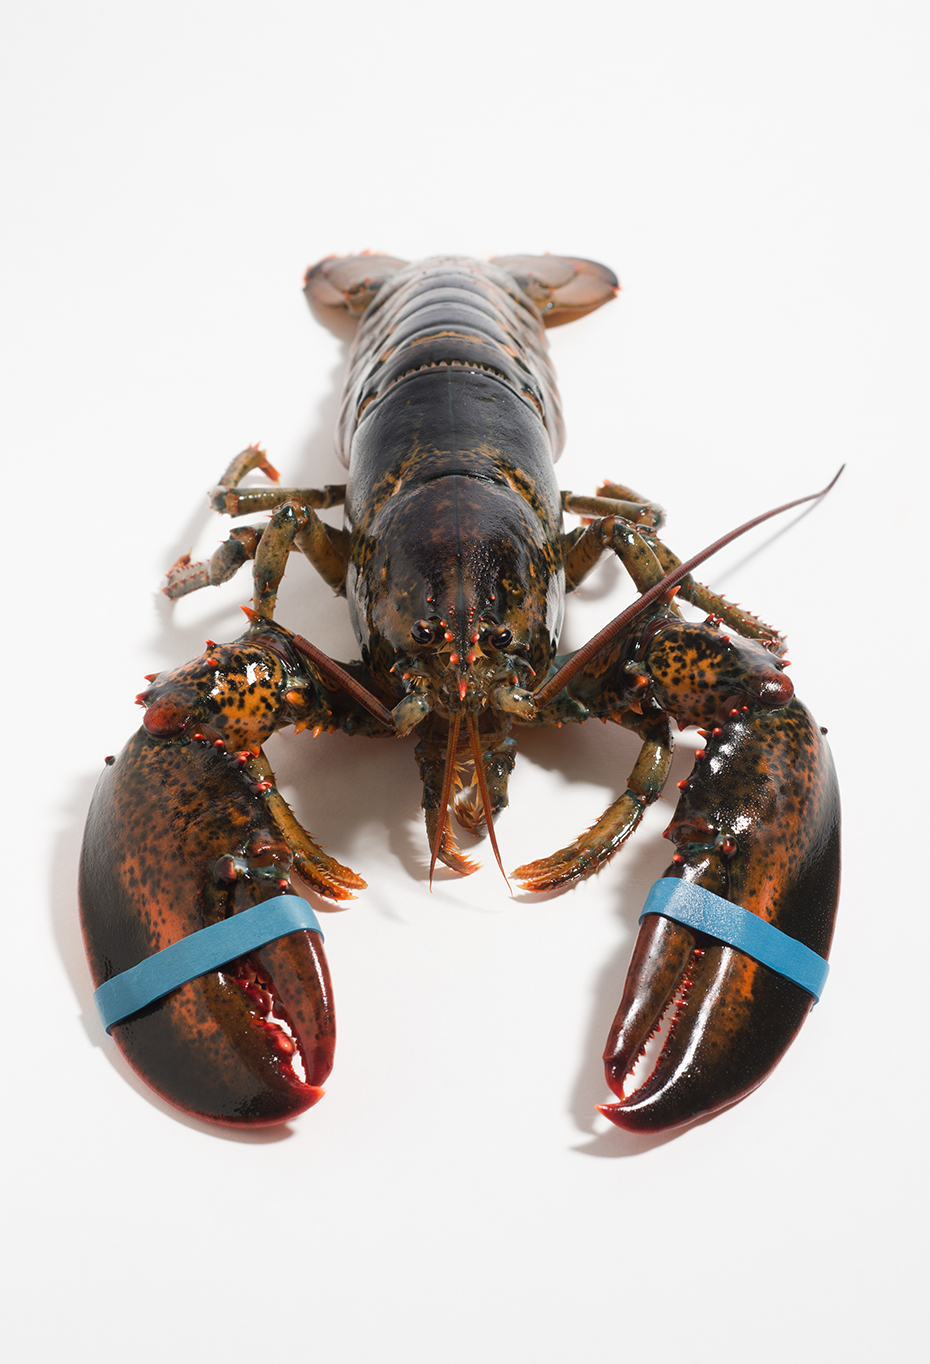 The Lobster Online